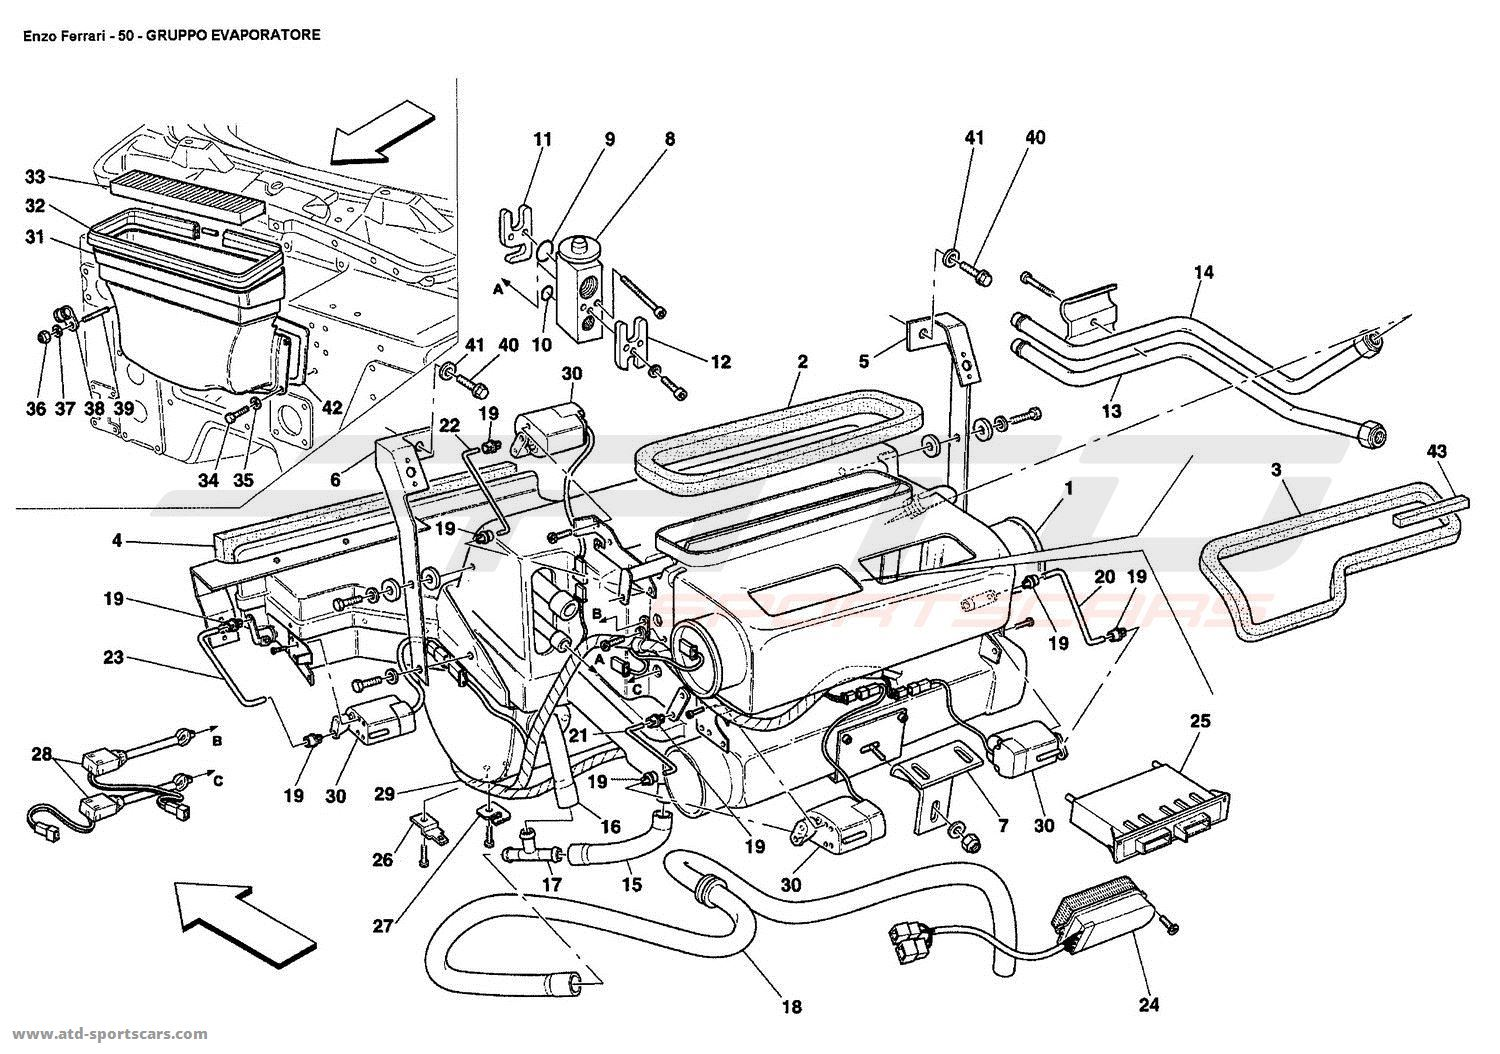 Ferrari Enzo Evaporator Unit Parts At Atd Sportscars